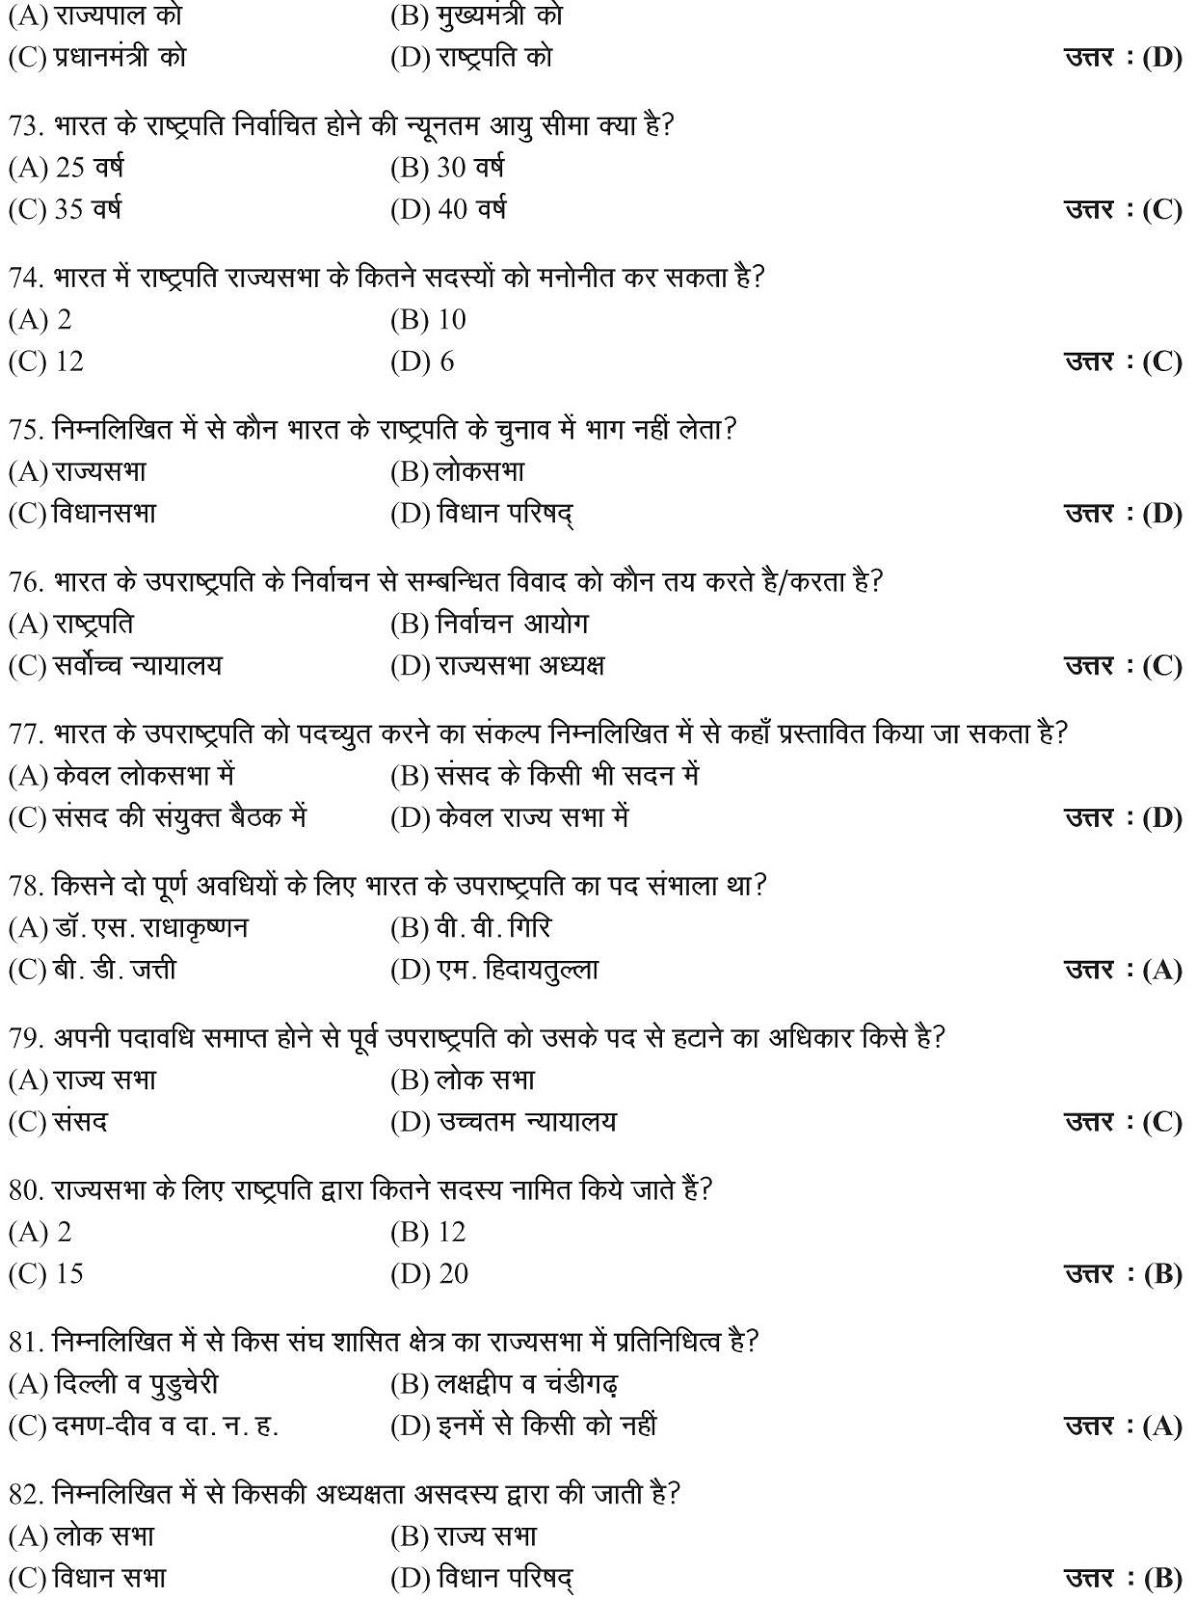 Gk Questions Answers On Indian Polity Governance In 2020 Gk Questions And Answers Gk Questions This Or That Questions